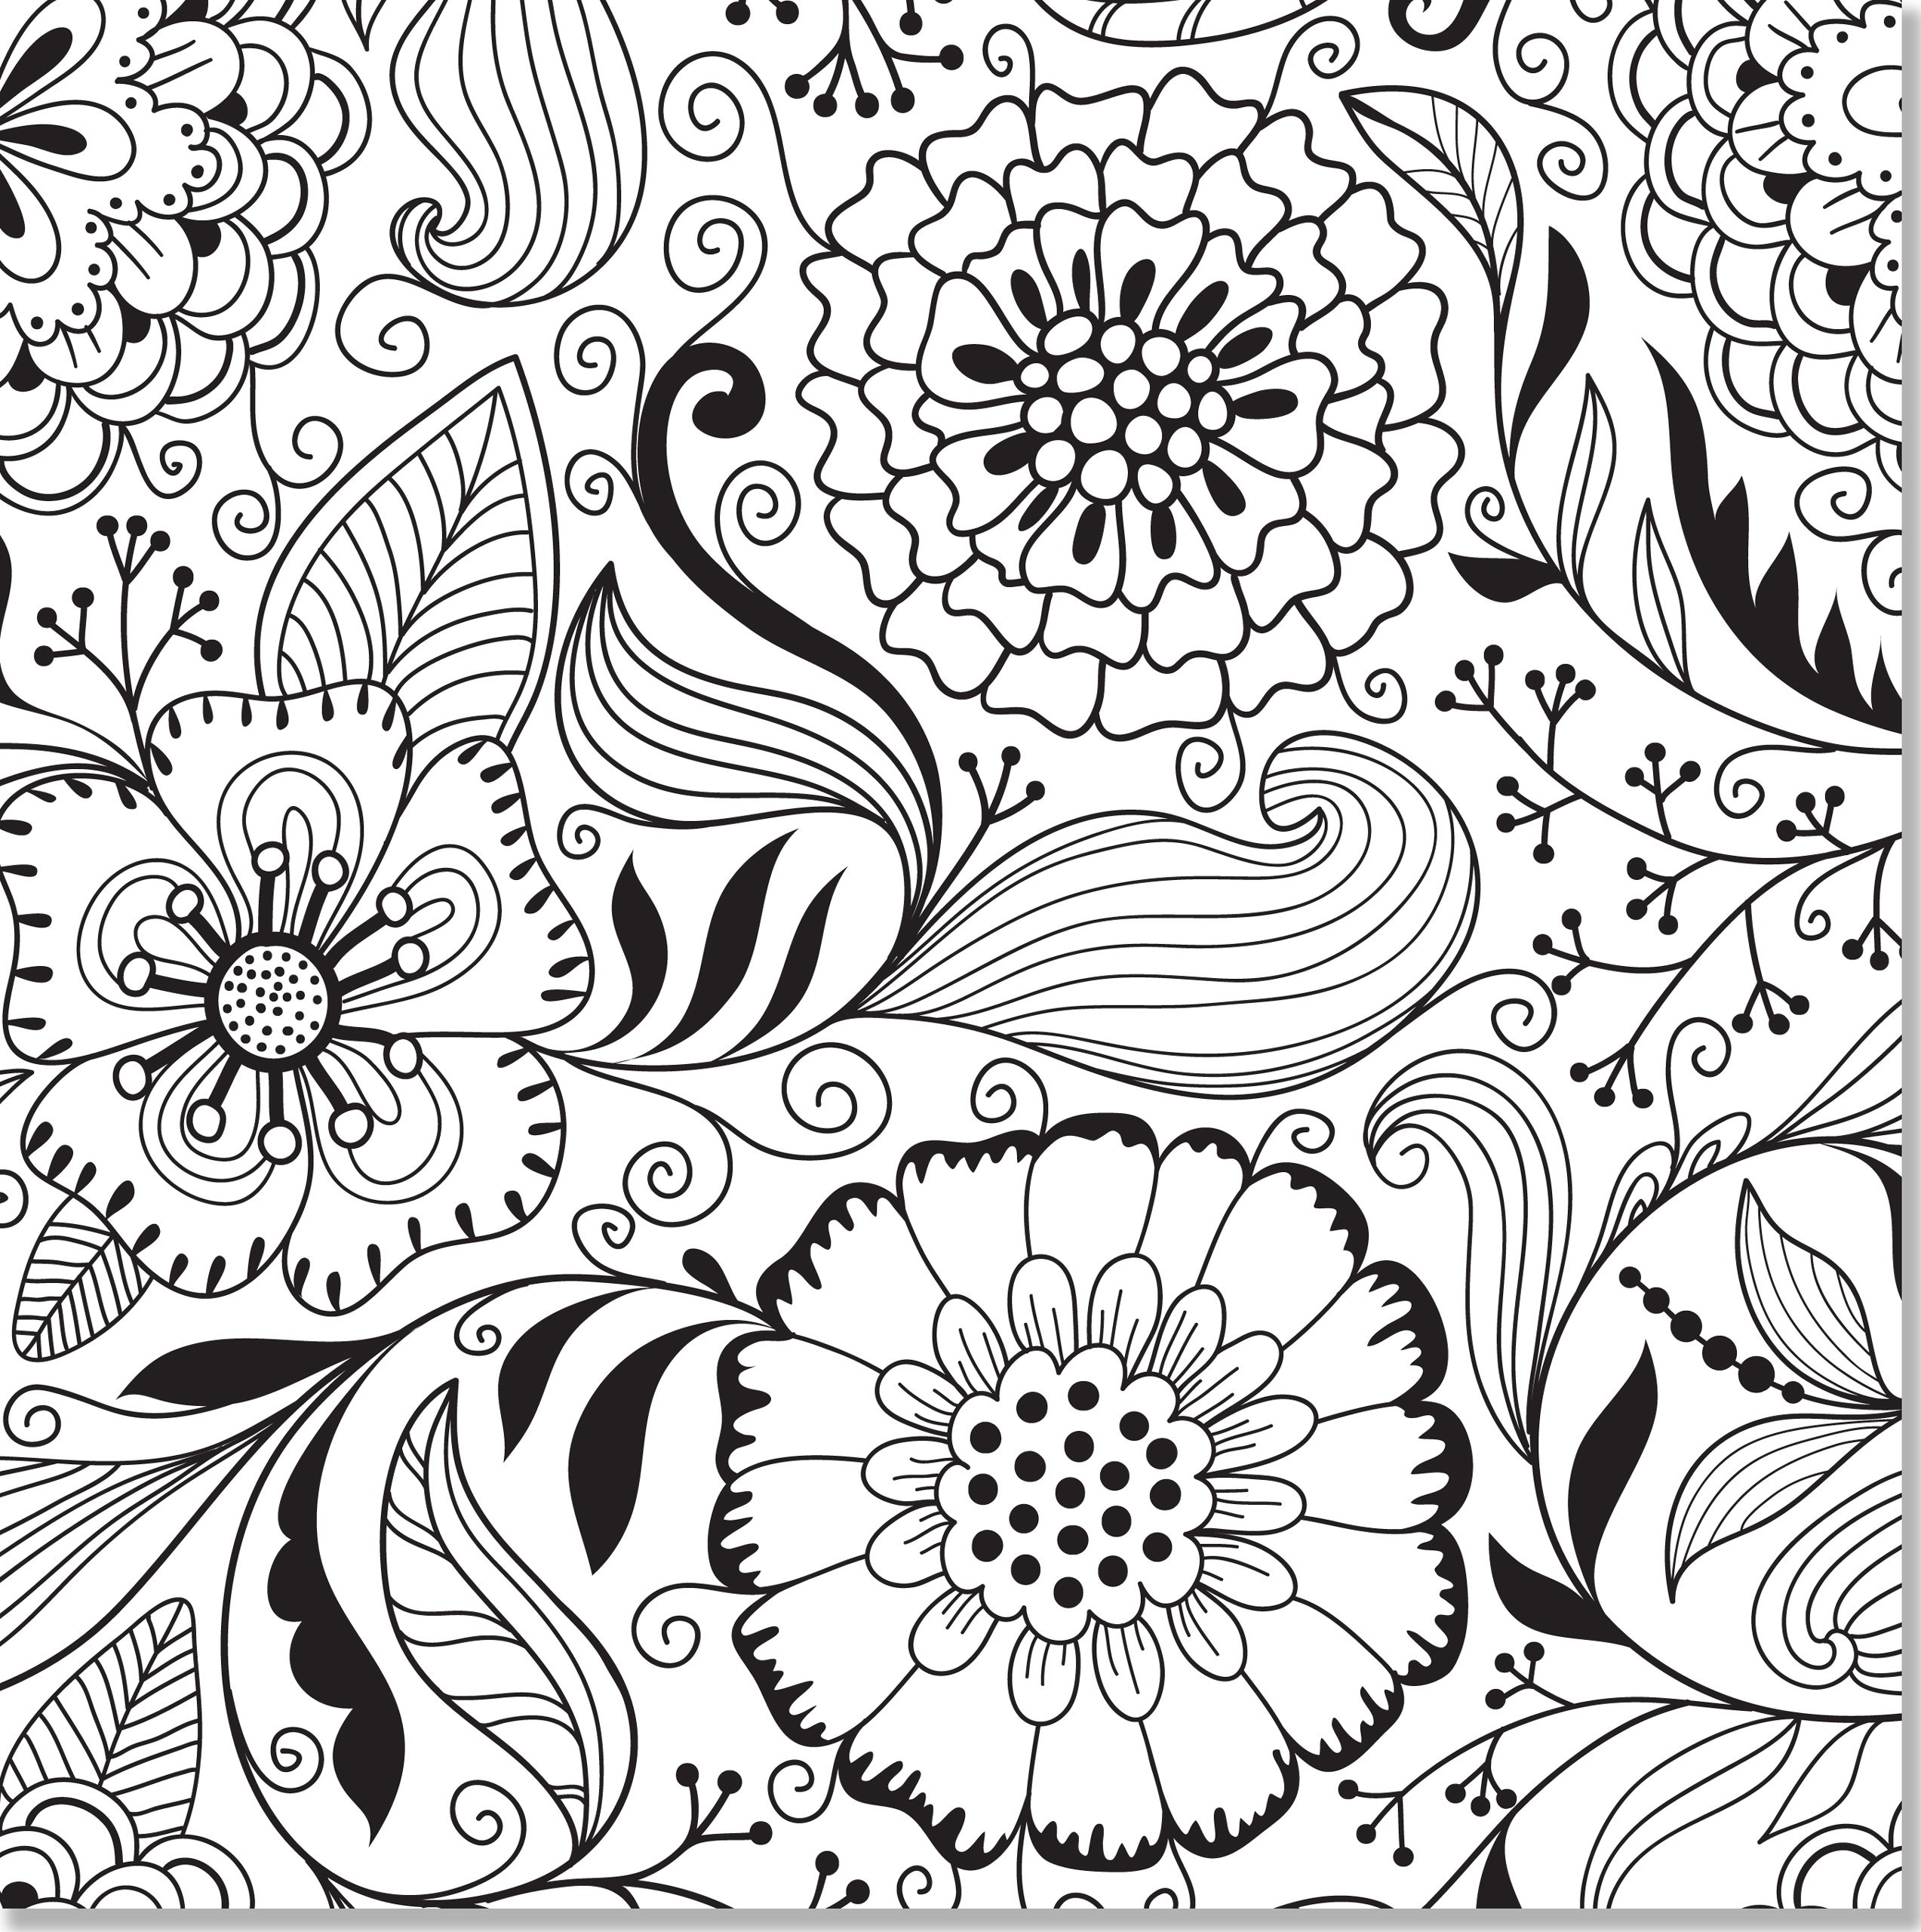 Amazon.com: Floral Designs Adult Coloring Book (31 stress ...